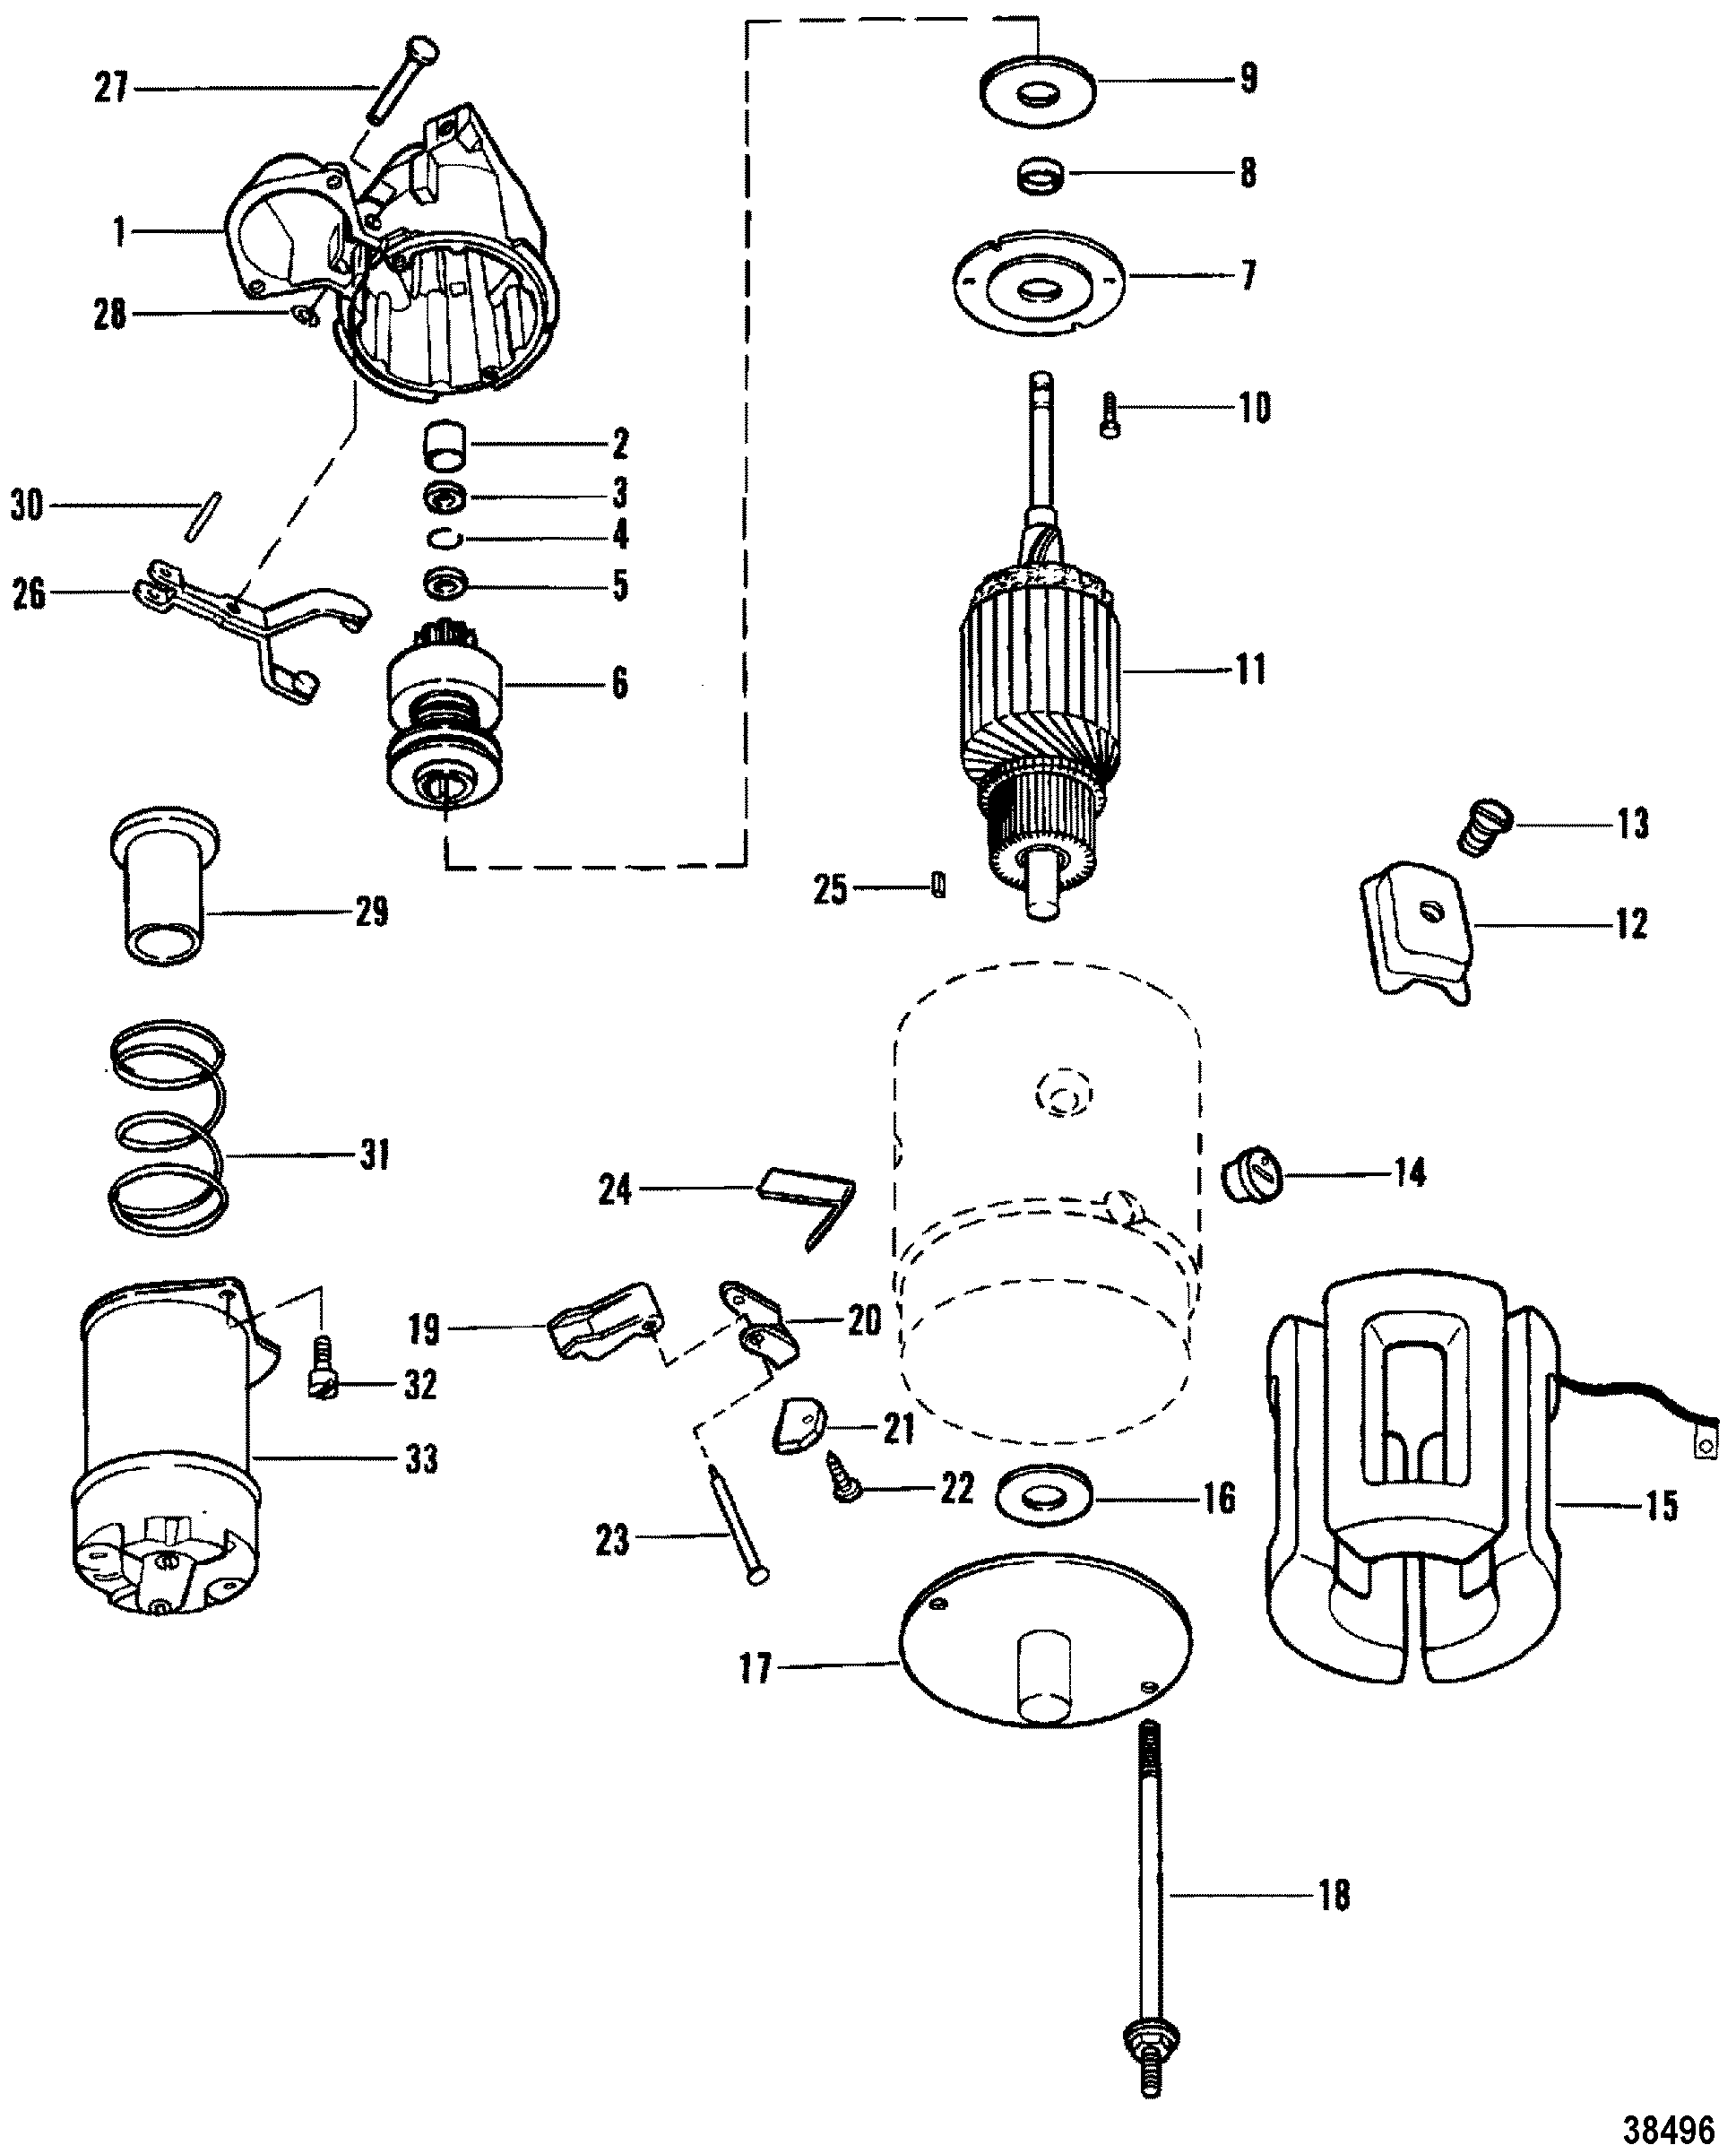 Starter Motor Use With 14 Flywheel For Mercruiser 898 200